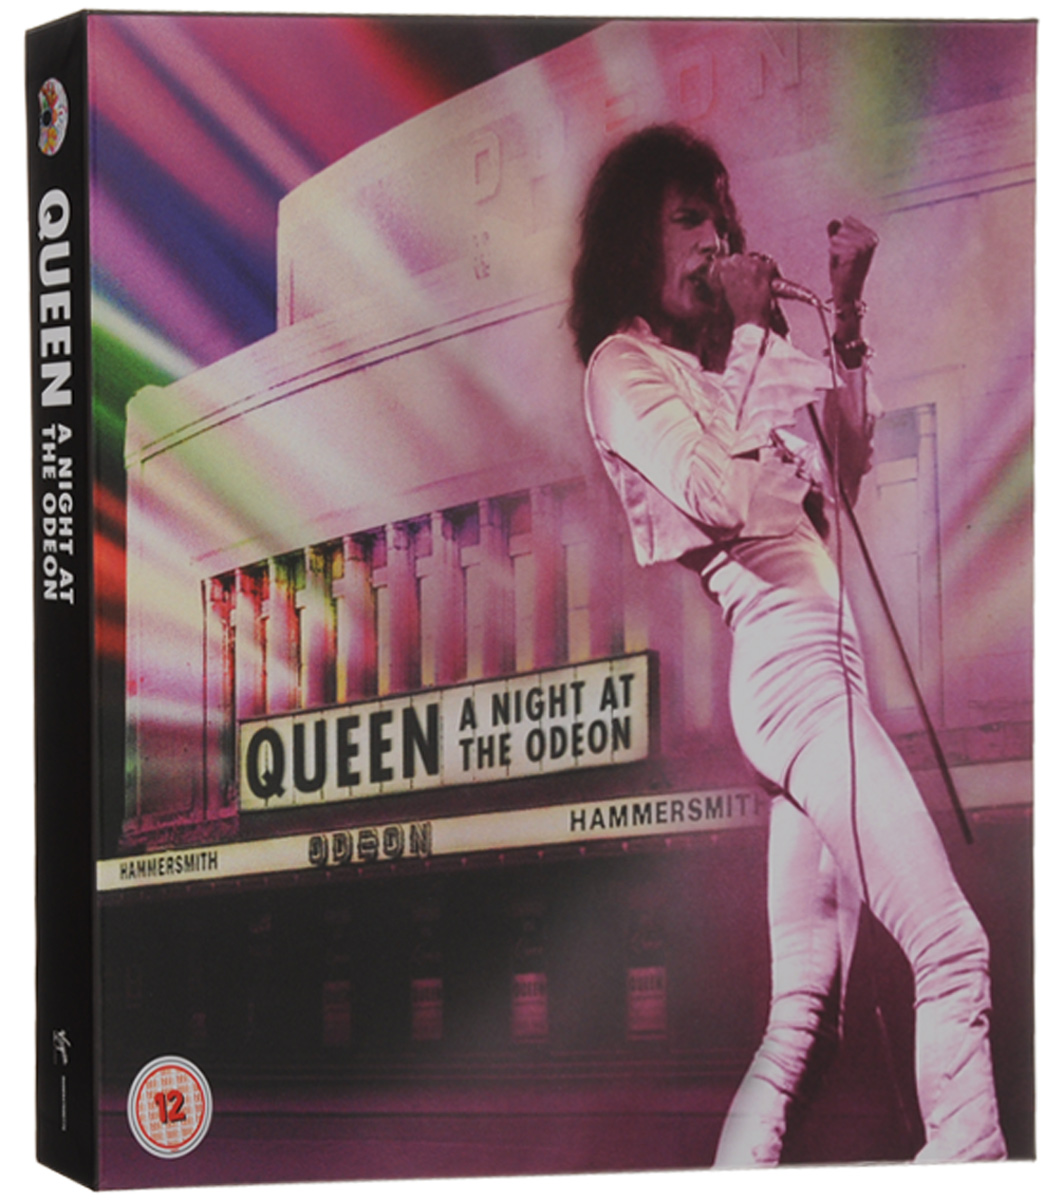 Queen Queen. A Night At The Odeon. Anniversary Limited Edition (CD + LP + DVD + Blu-ray) купить